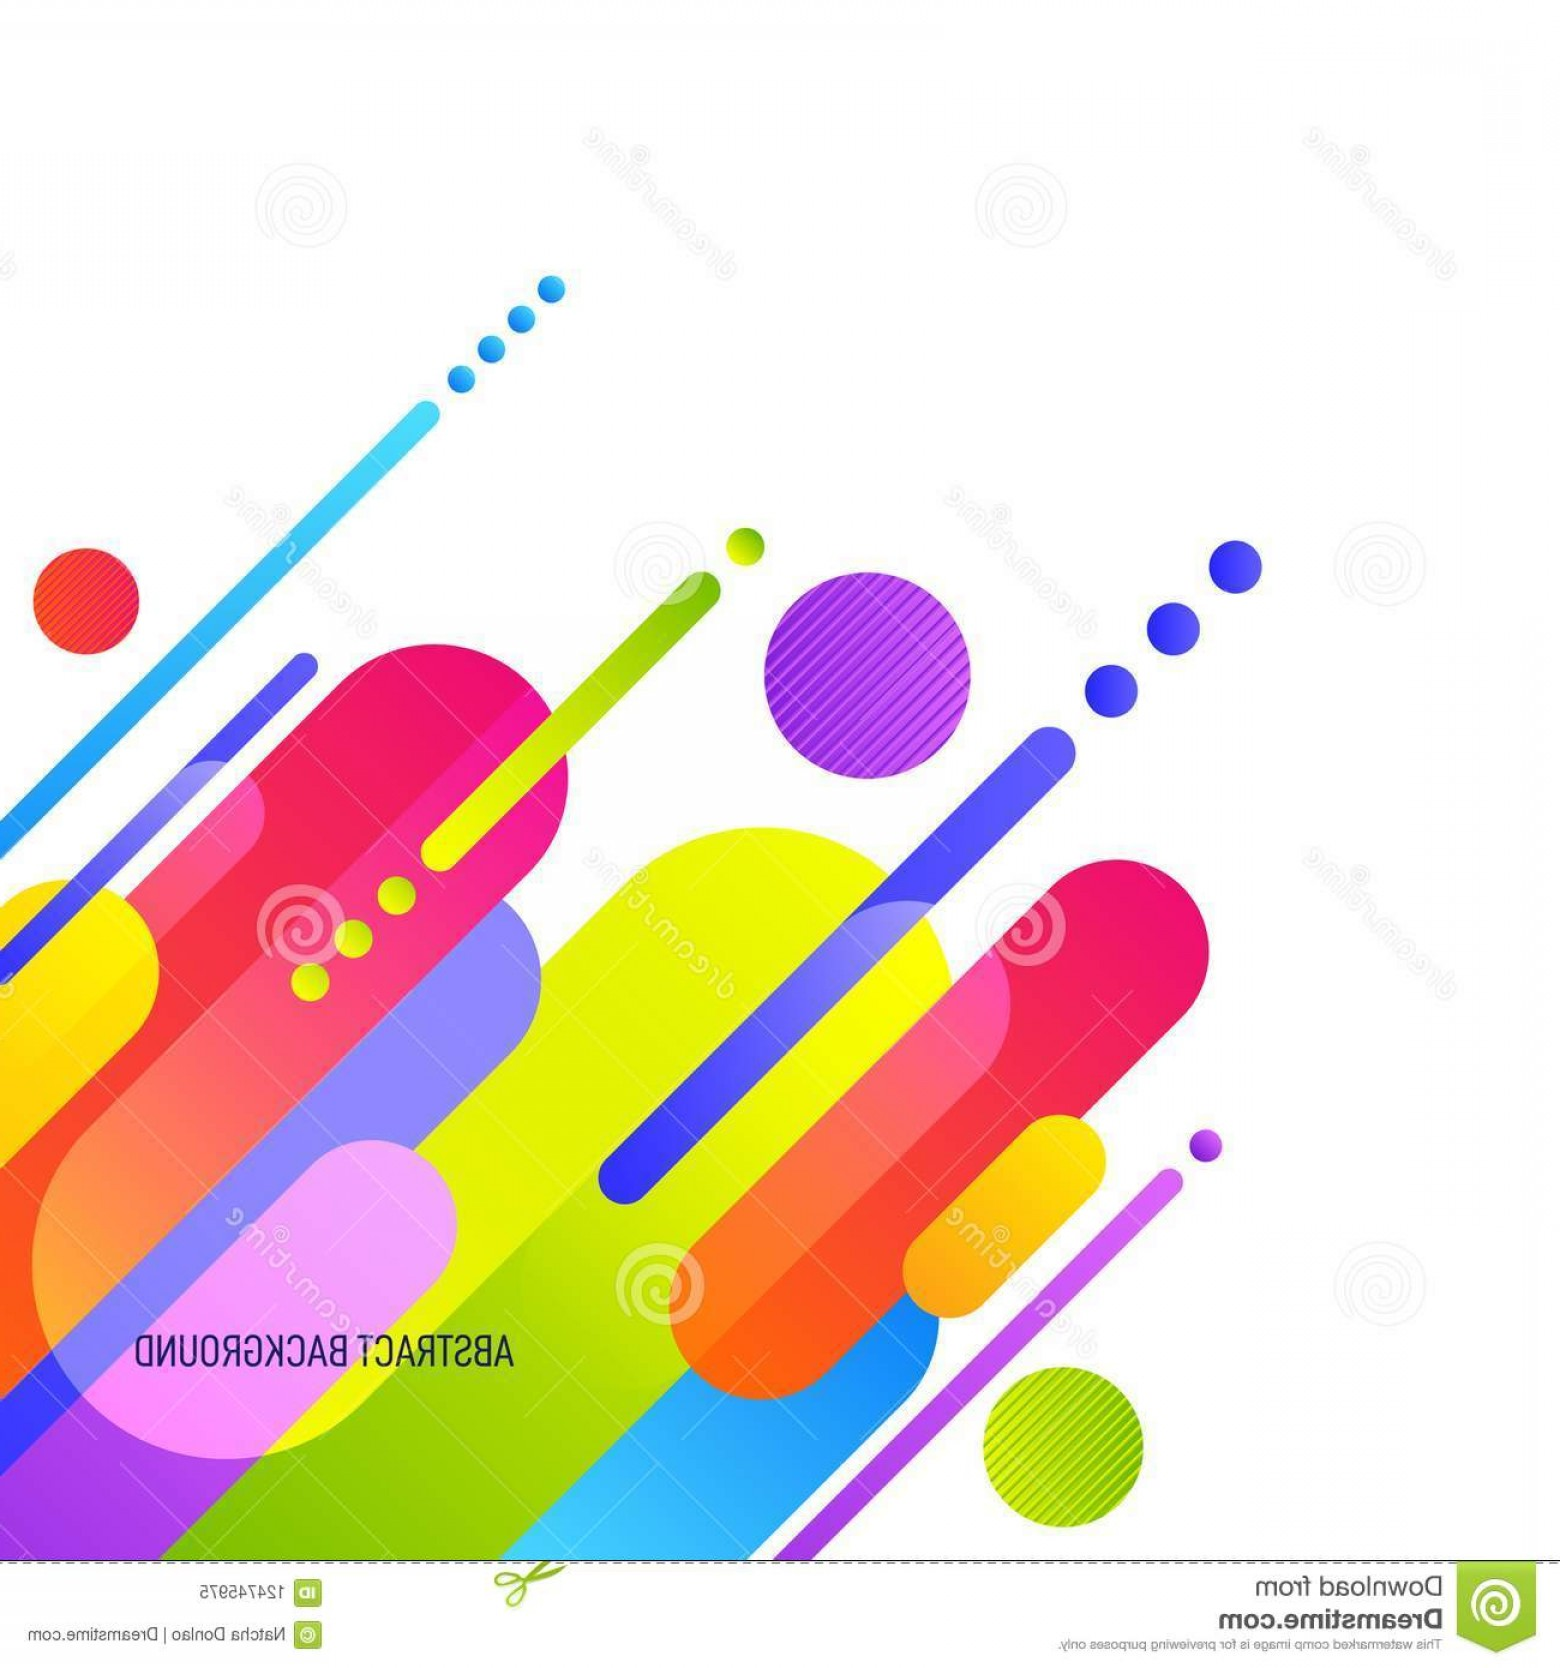 Backgroung Vector: Abstract Colorful Gradient Geometric Shape Background Vector Illustration Abstract Colorful Gradient Geometric Shape Background Image